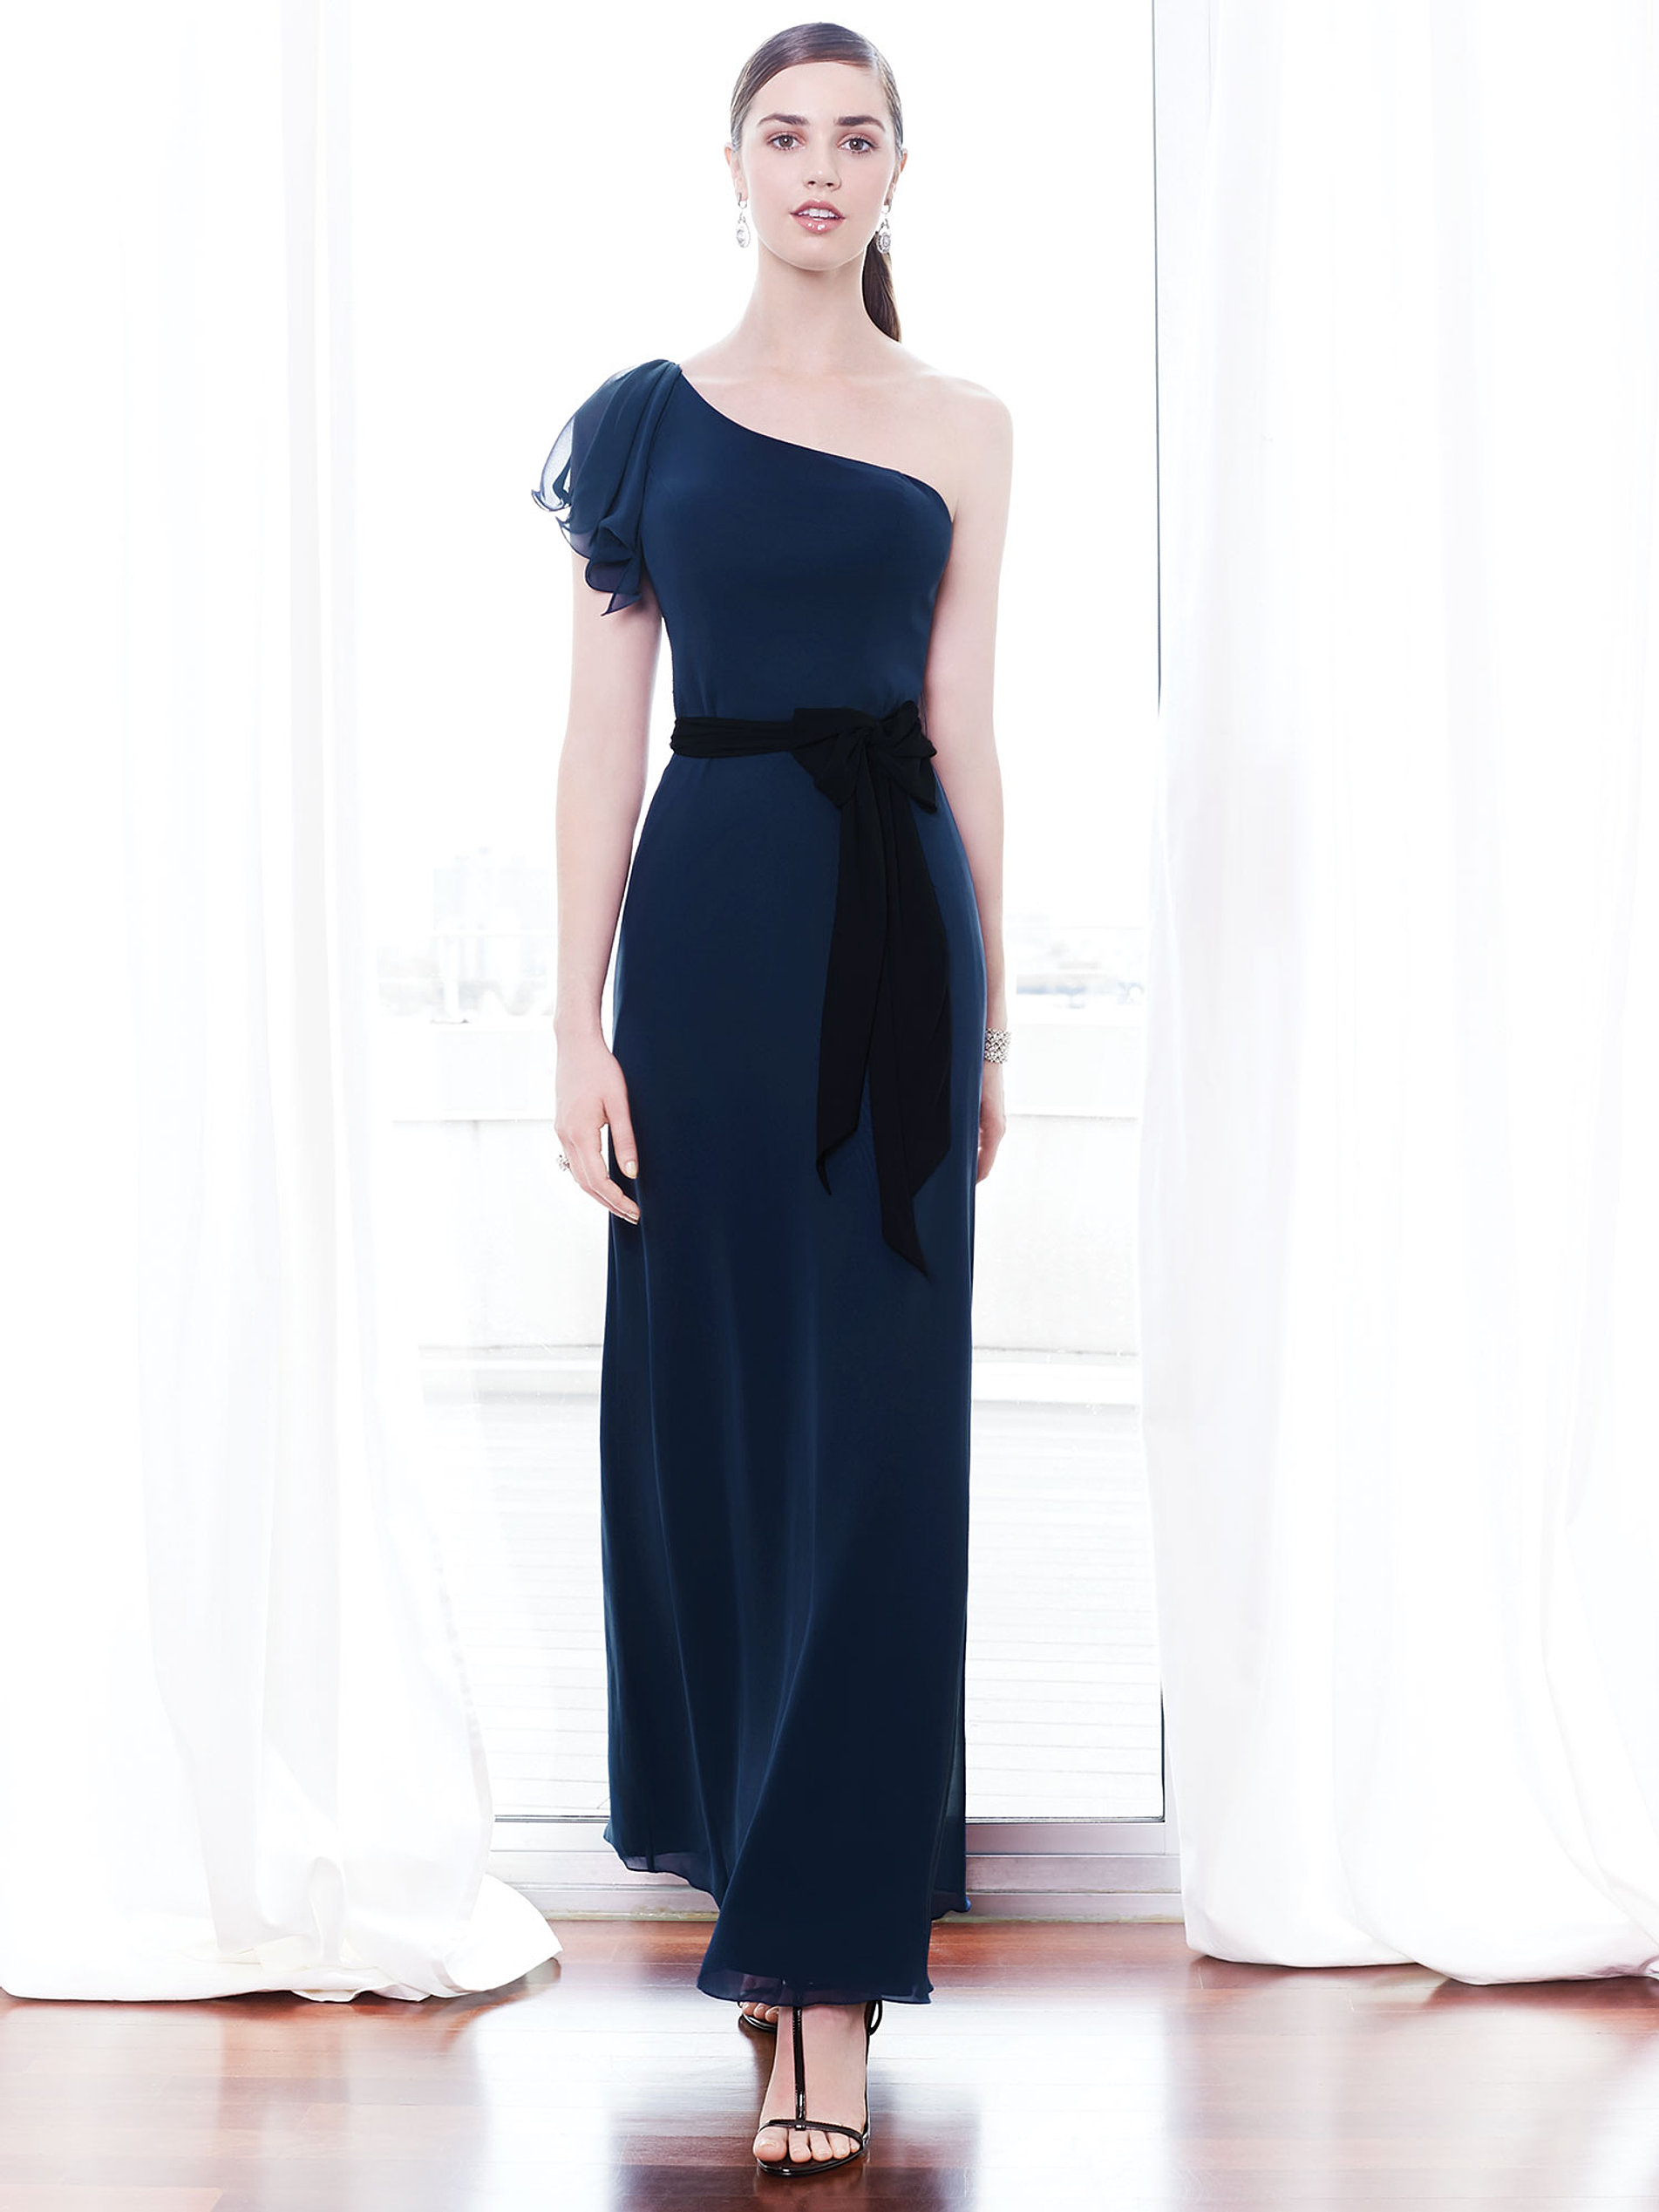 Colour by kenneth winston designer bridesmaid dresses los angeles bridesmaid dresses with straps ombrellifo Gallery